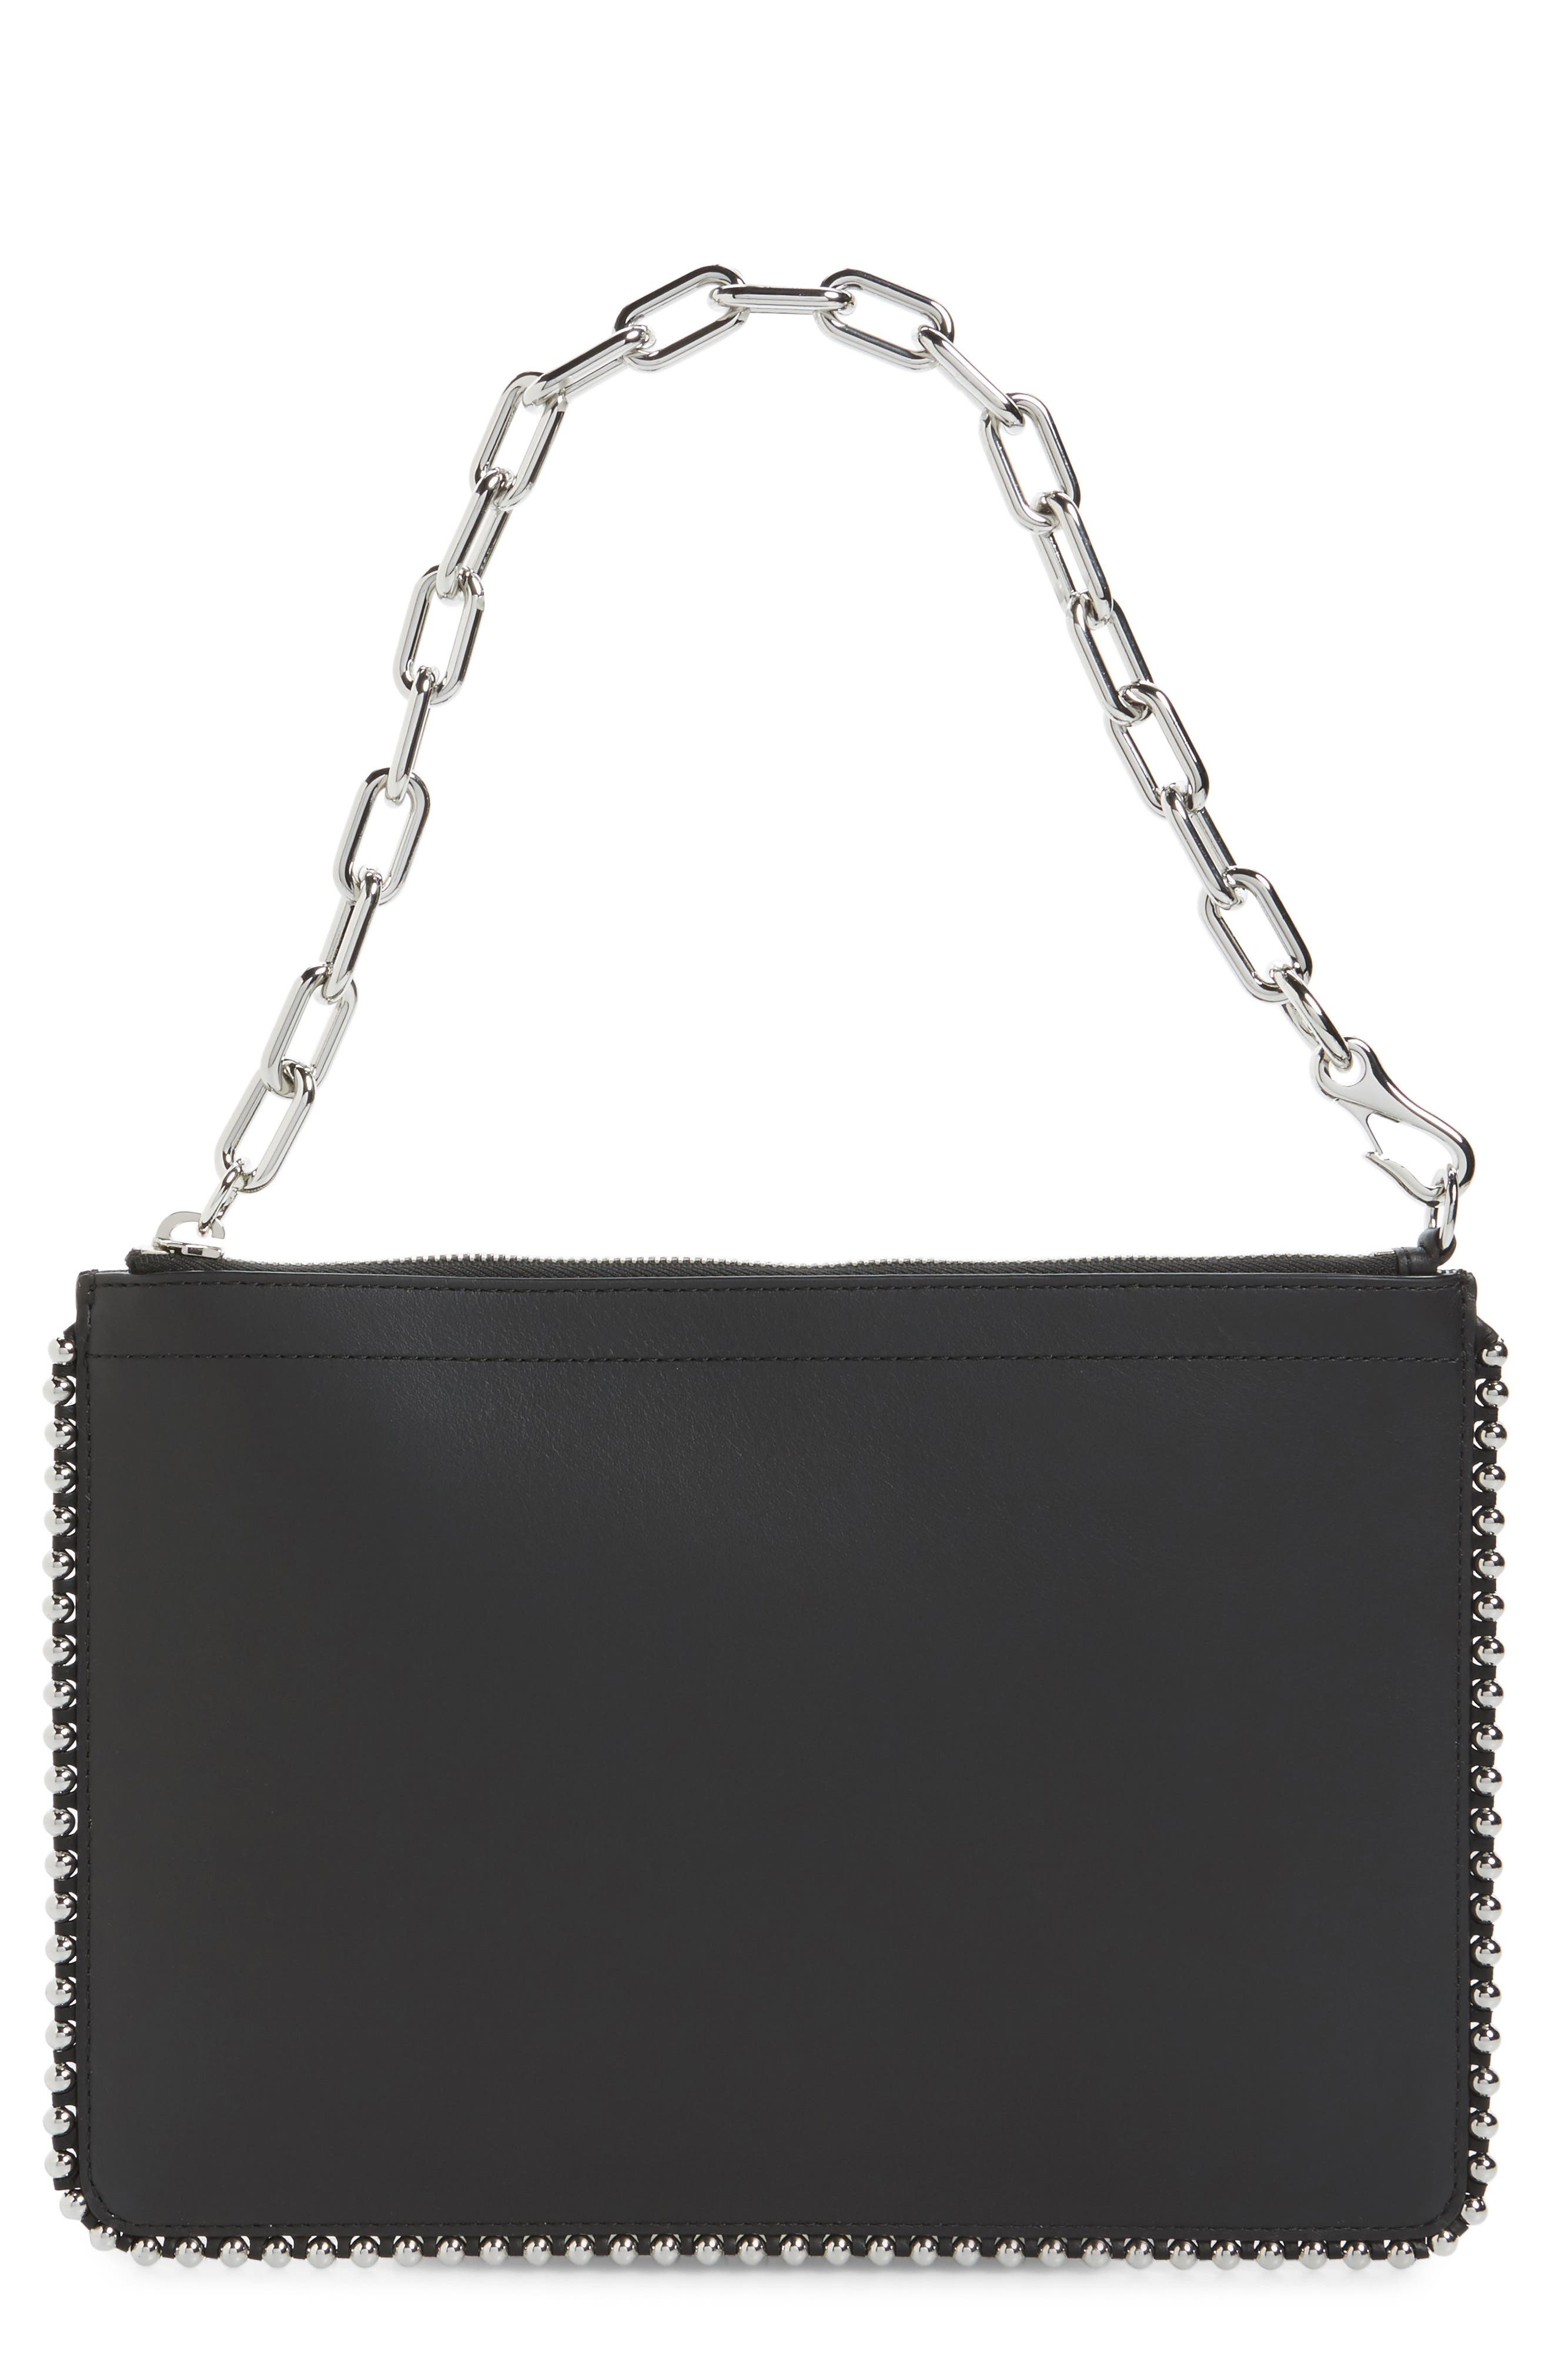 Main Image - Alexander Wang Attica Leather Pouch